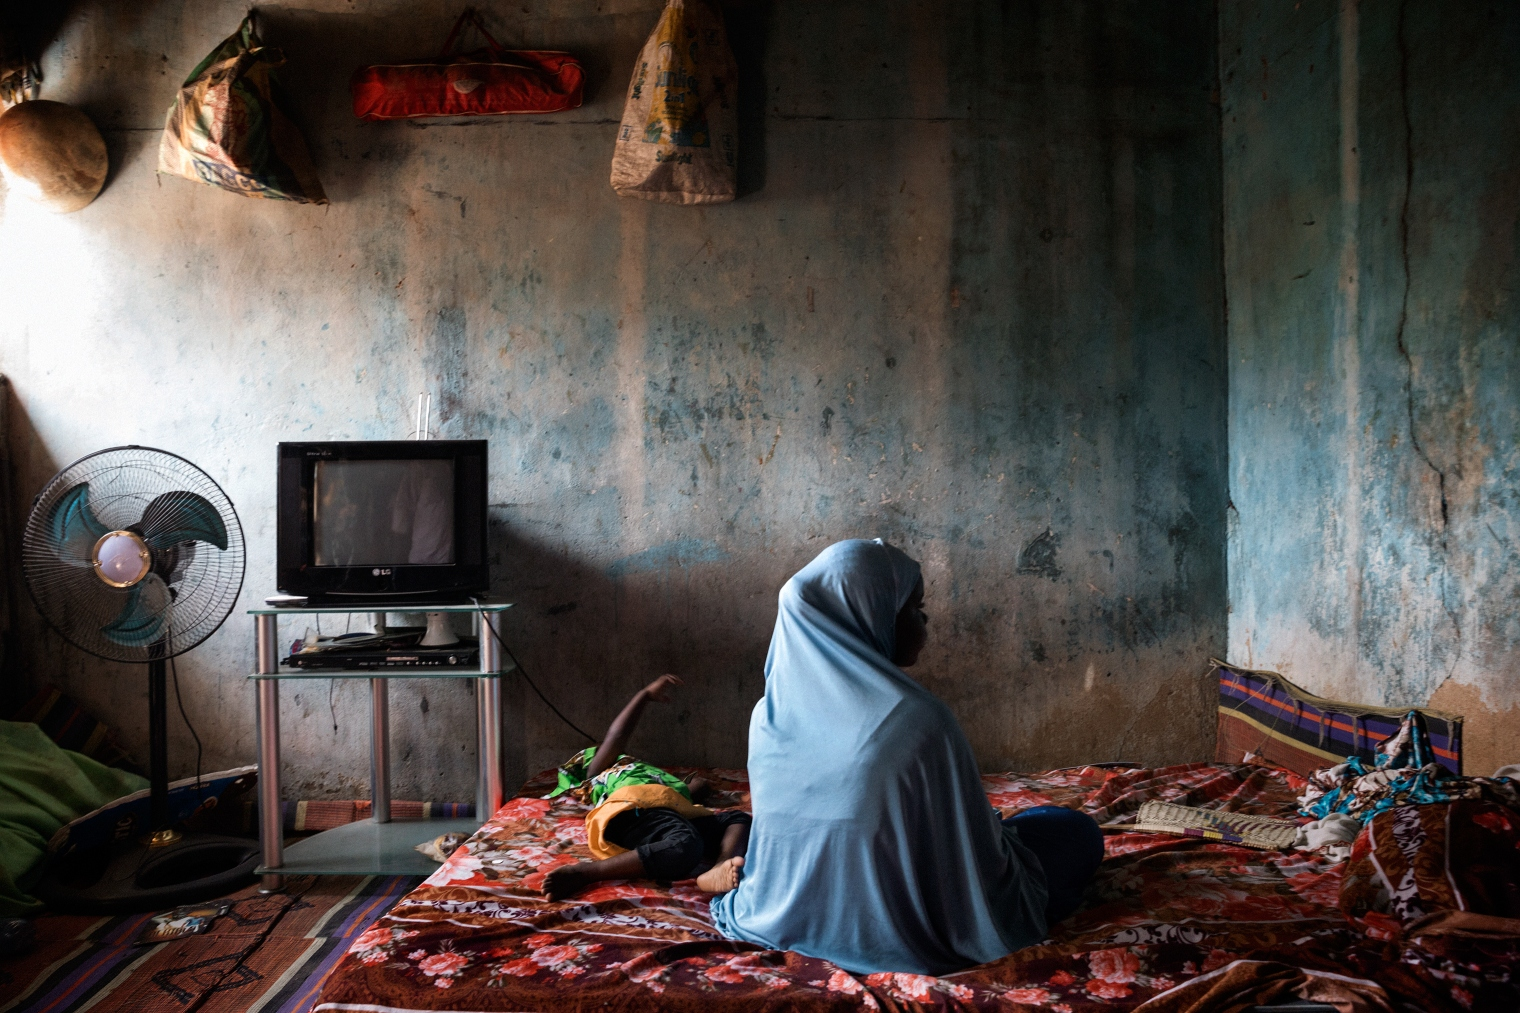 Dada, 14, with her daughter Hussainia, 18 months, was kidnapped and raped at age 12 while a captive of Boko Haram.